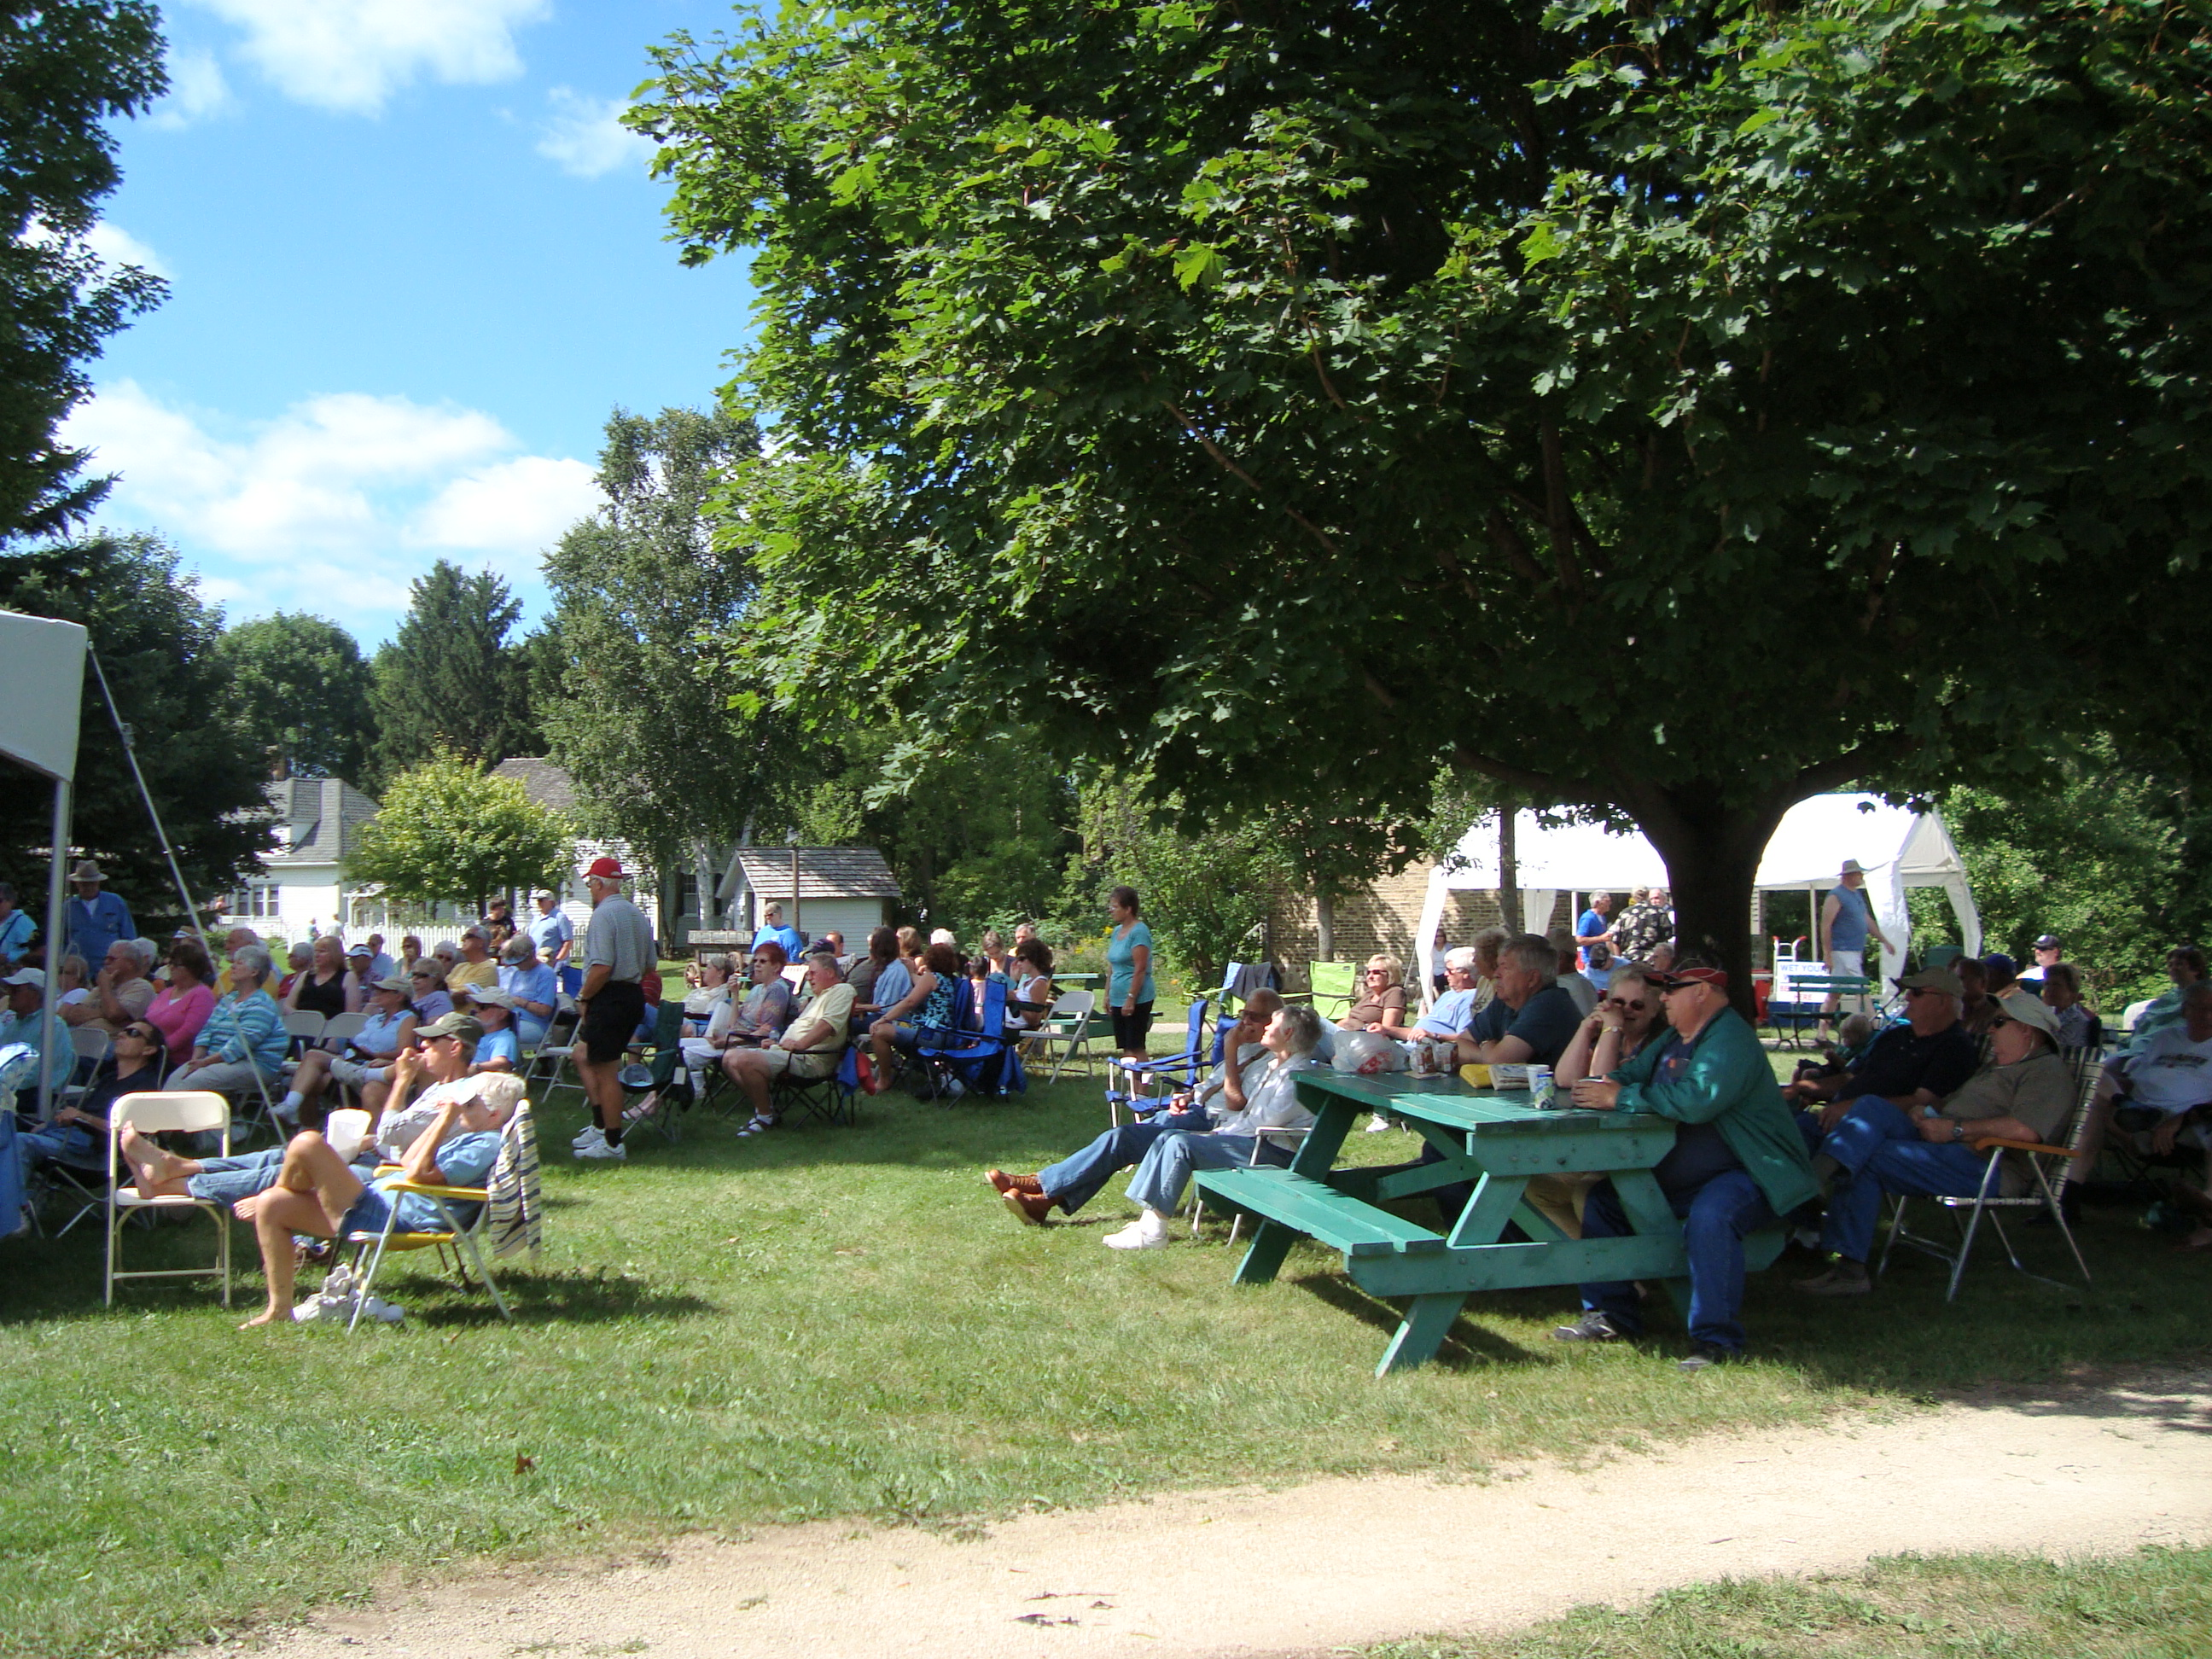 Crowd Enjoys Bluegrass Music in Sunny Weather